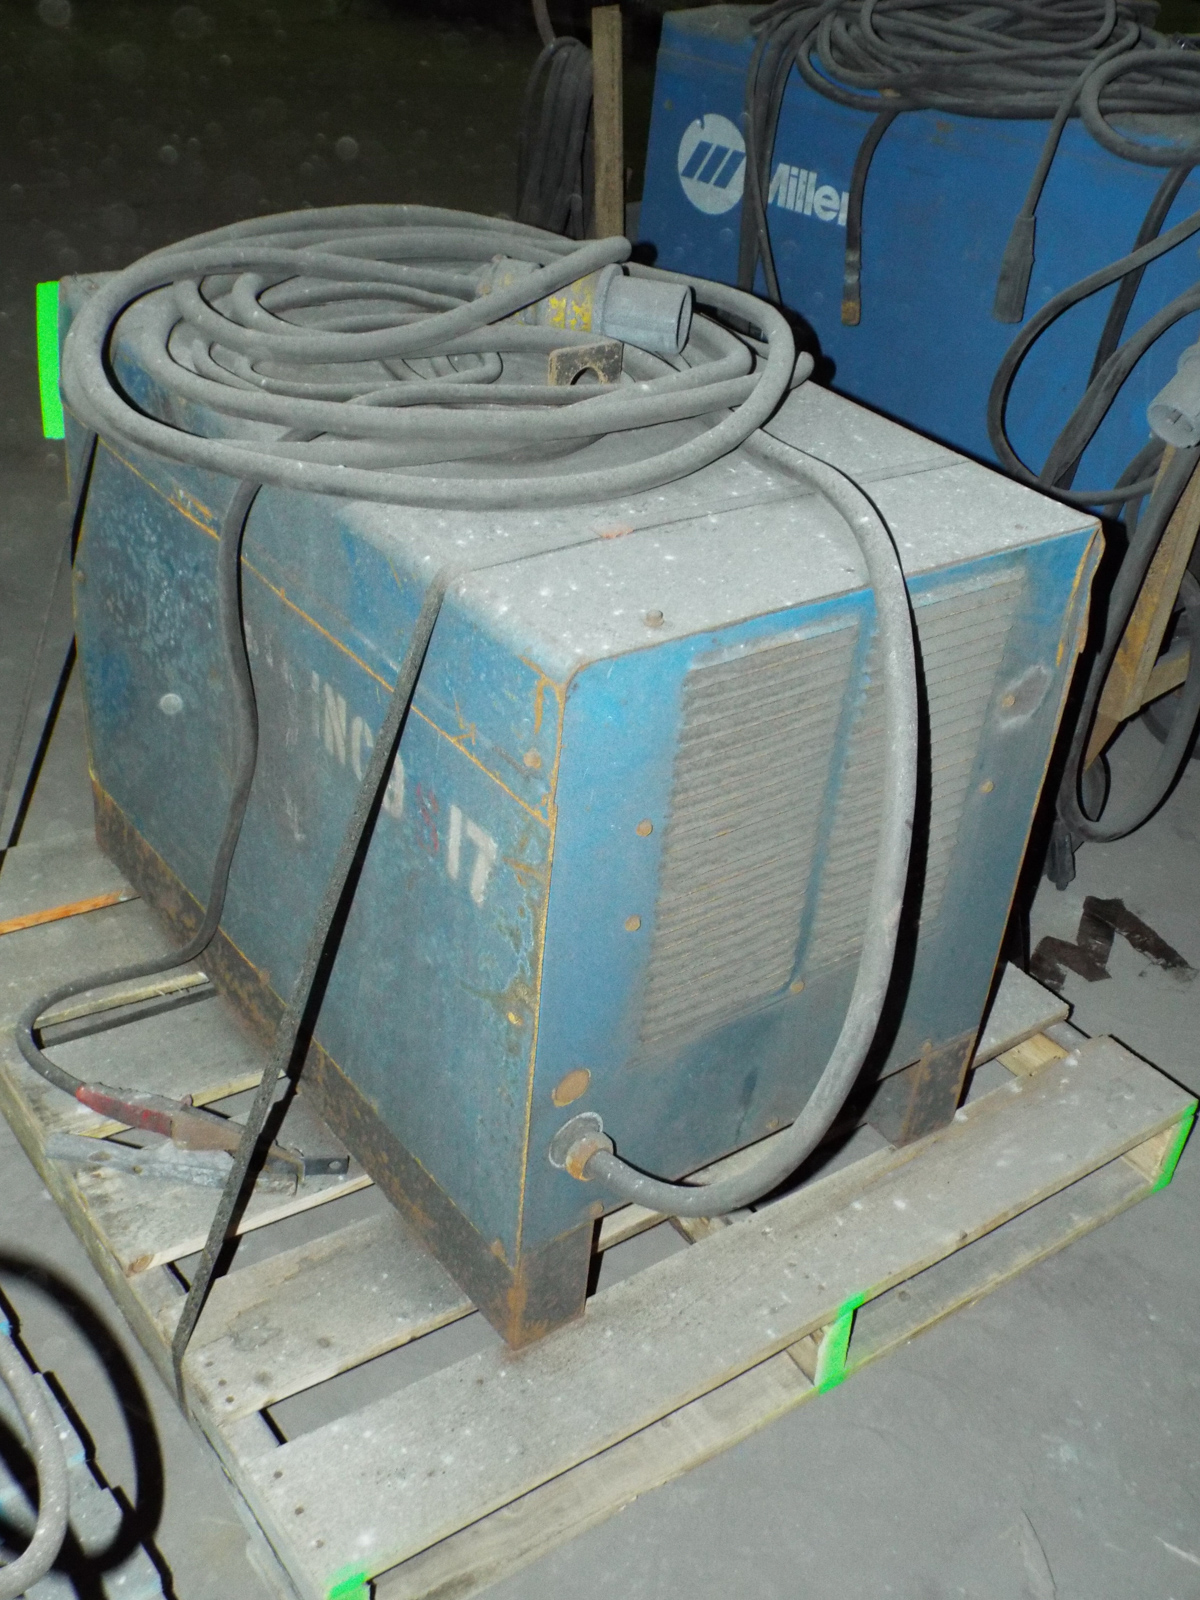 Lot 7 - MILLER INTELLIWELD 650 WELDING POWER SOURCE WITH CABLES, S/N: N/A